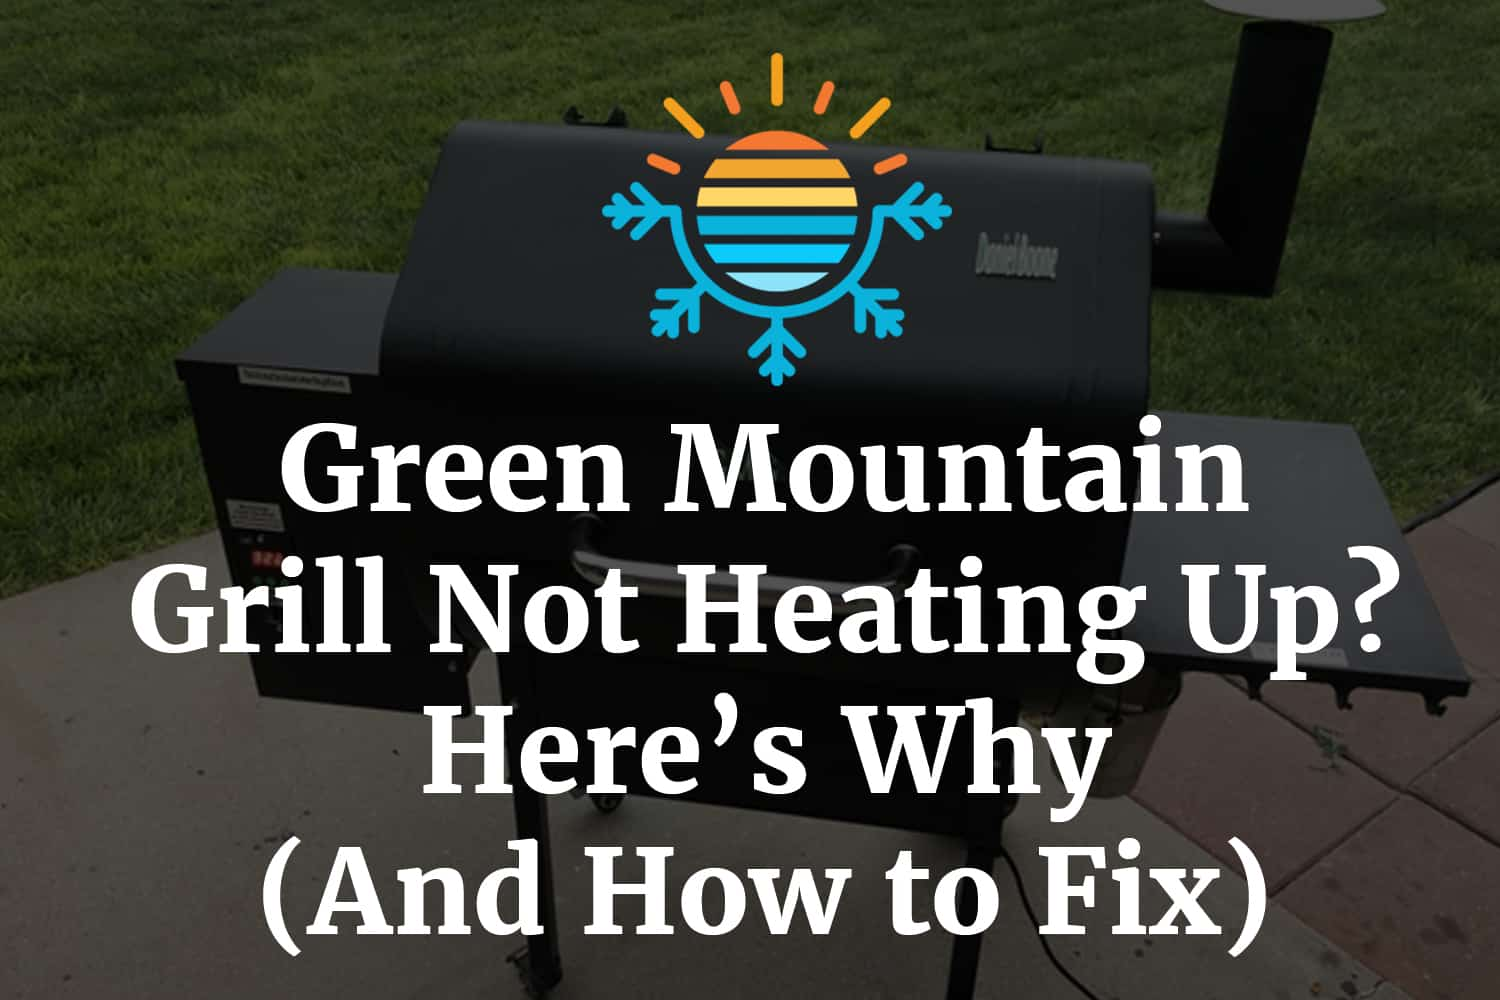 Green Mountain Grill Not Heating Up? Here's Why (And How to Fix)